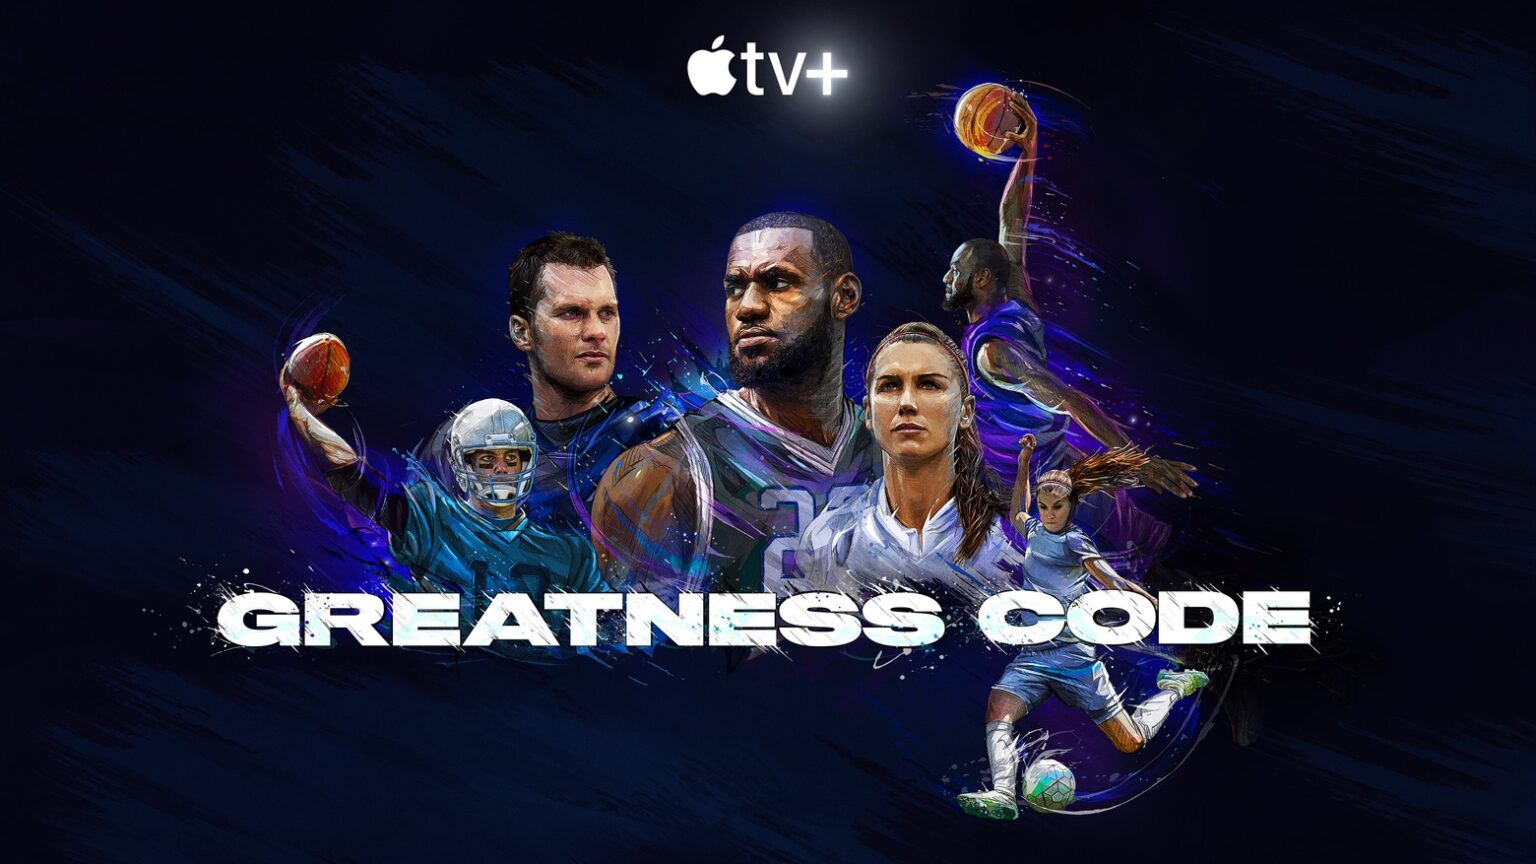 'Greatness Code' debuted from Apple TV+ on July 10, 2020